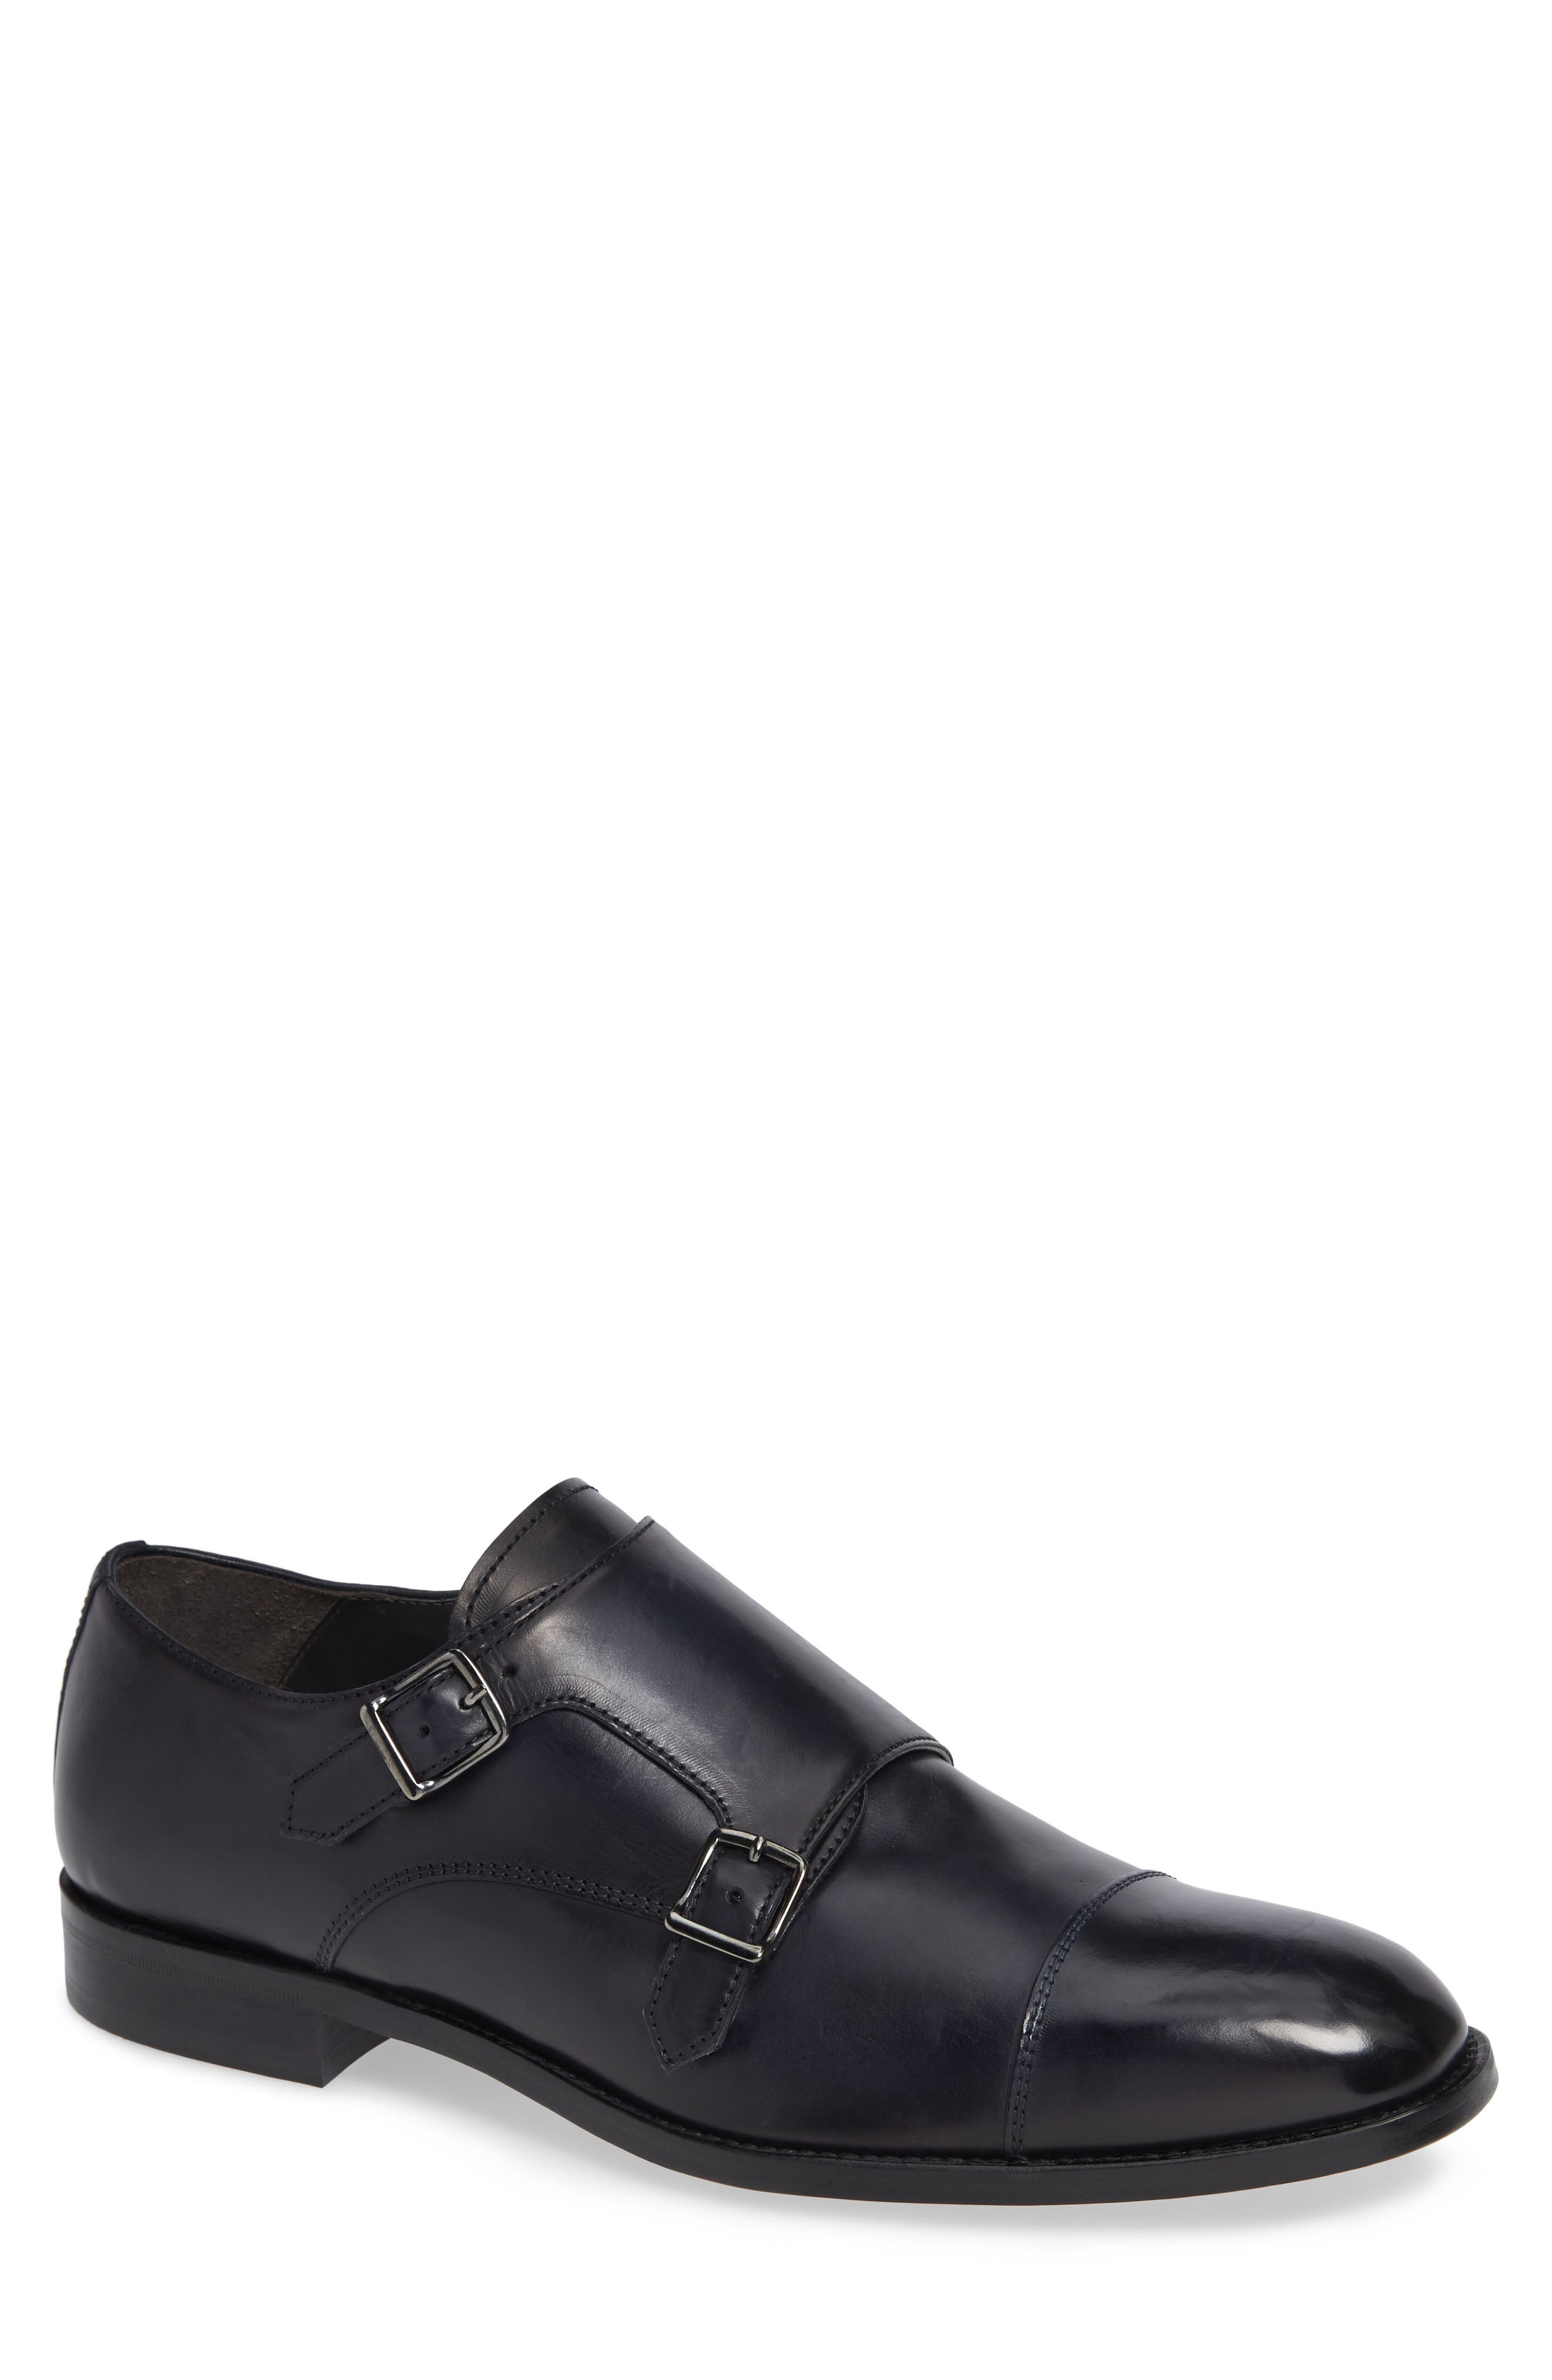 TO BOOT NEW YORK Quentin Cap Toe Monk Shoe, Main, color, BLUE MARINE LEATHER